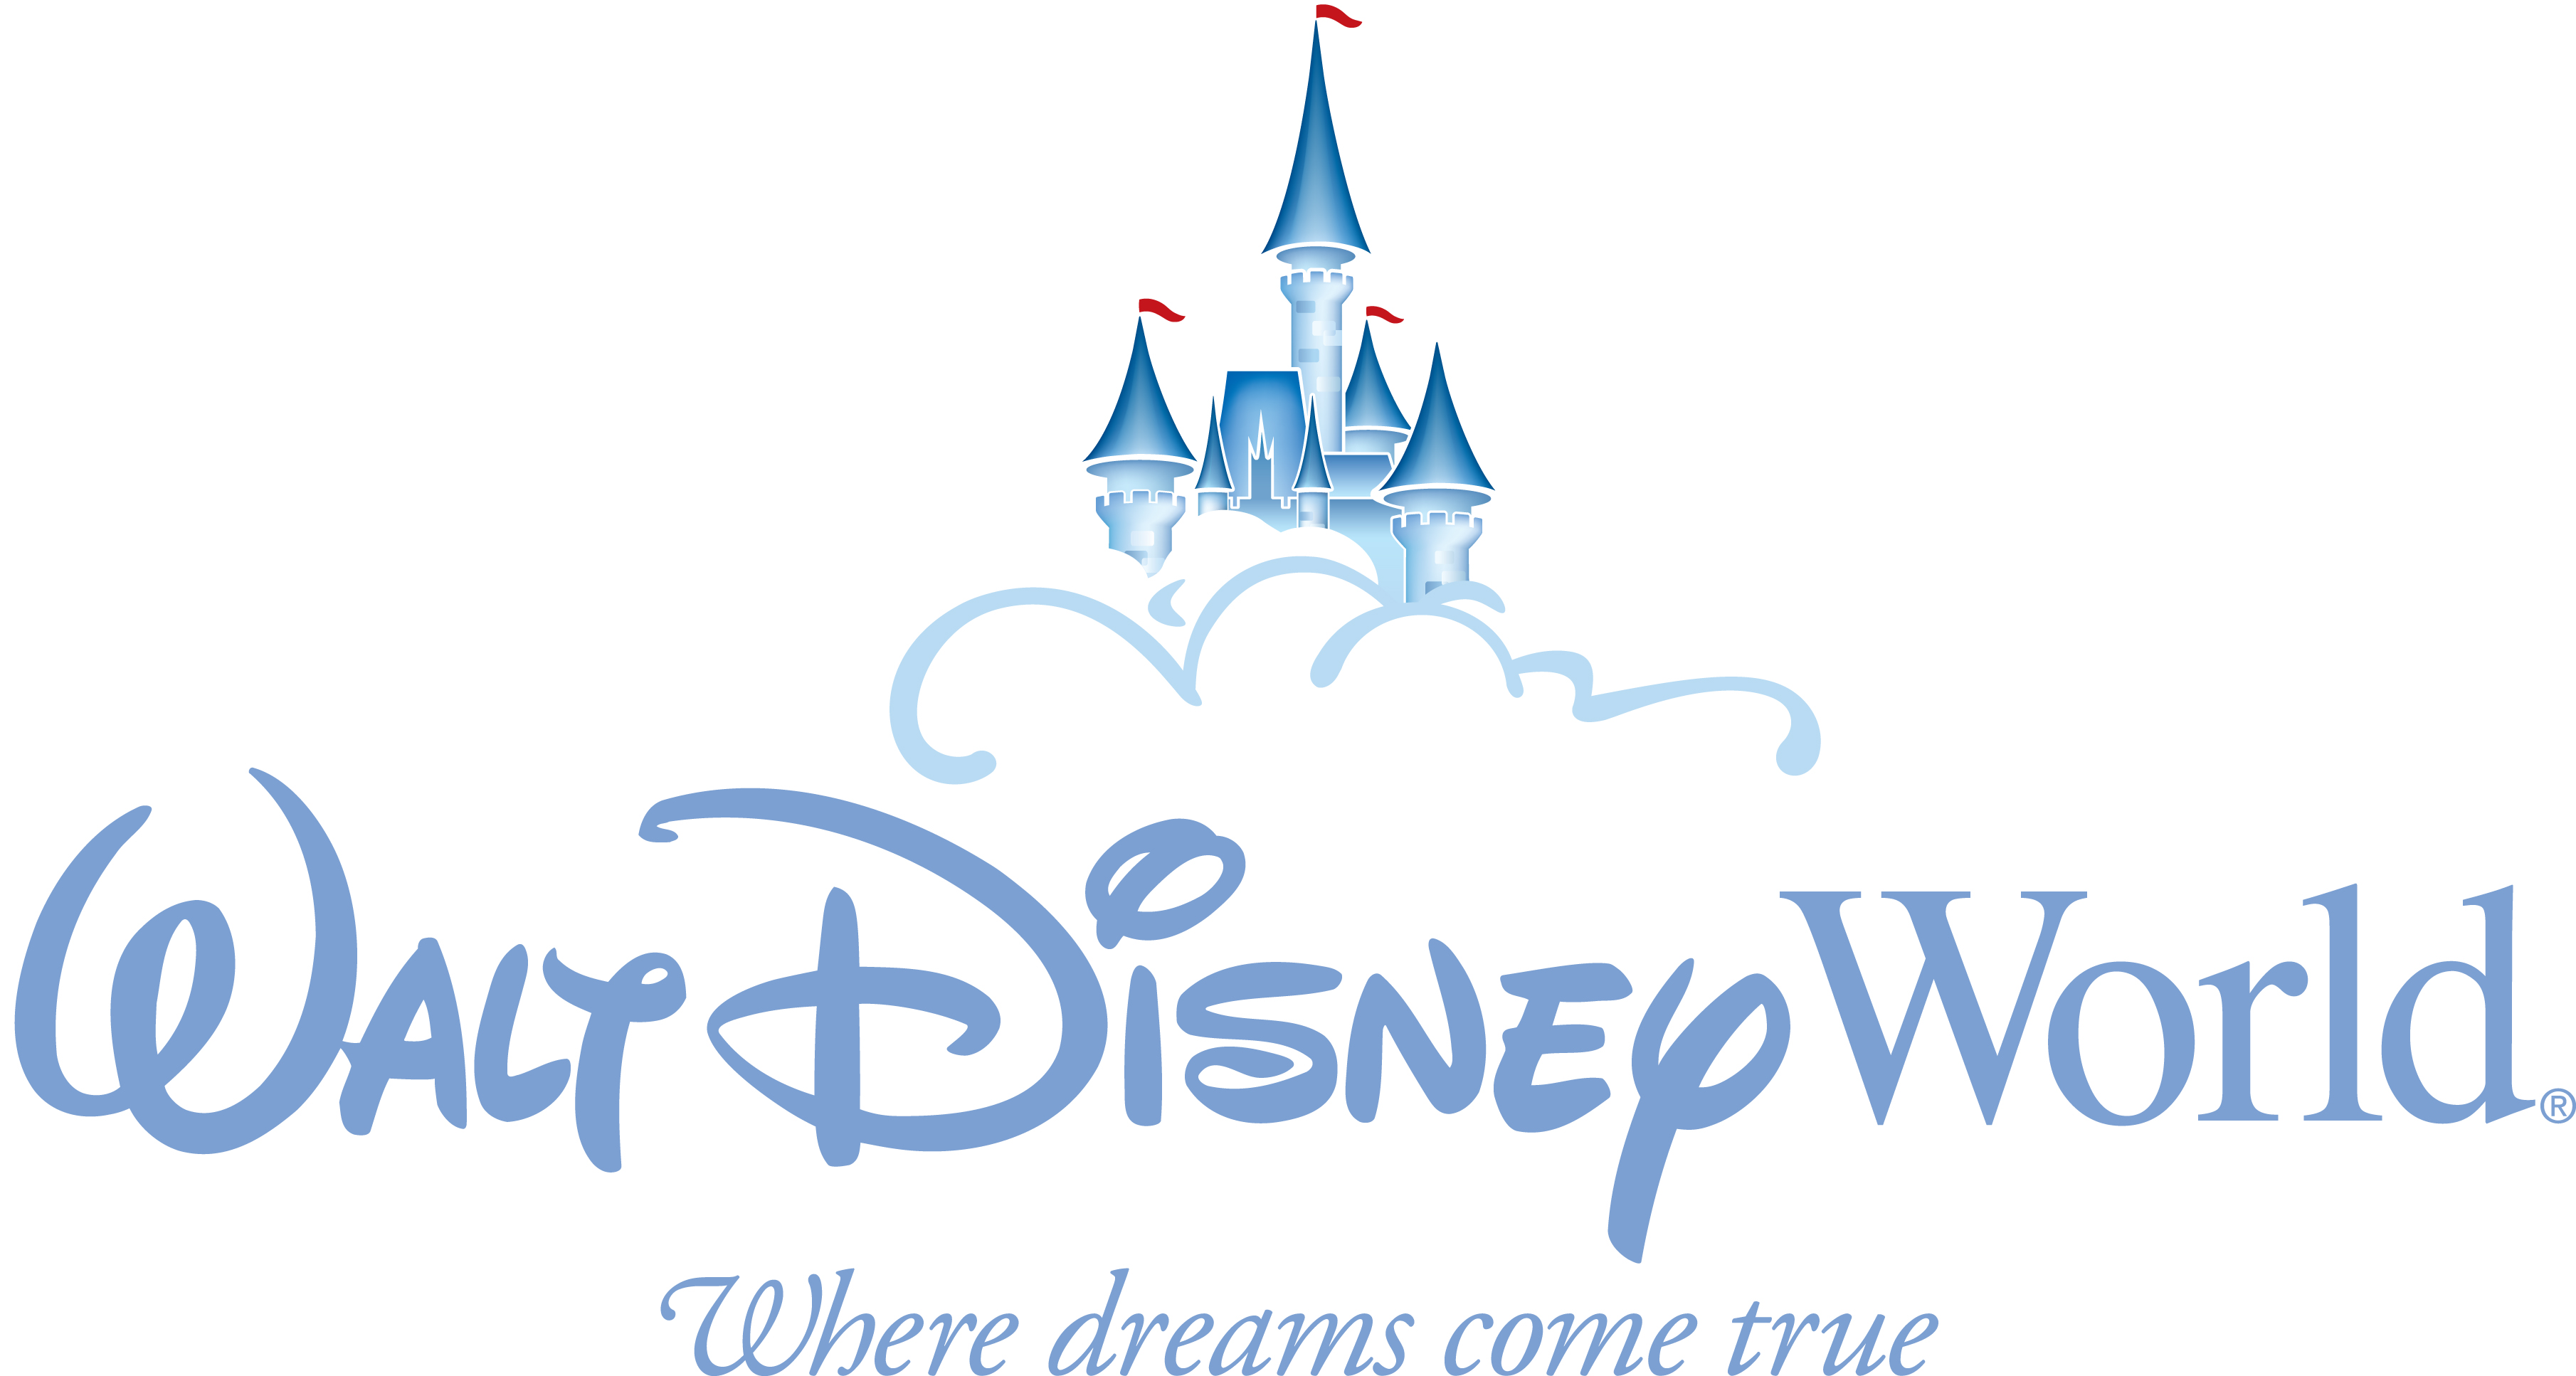 Clip Art Disney World Clip Art disney world magic kingdom clipart kid logo png clip art